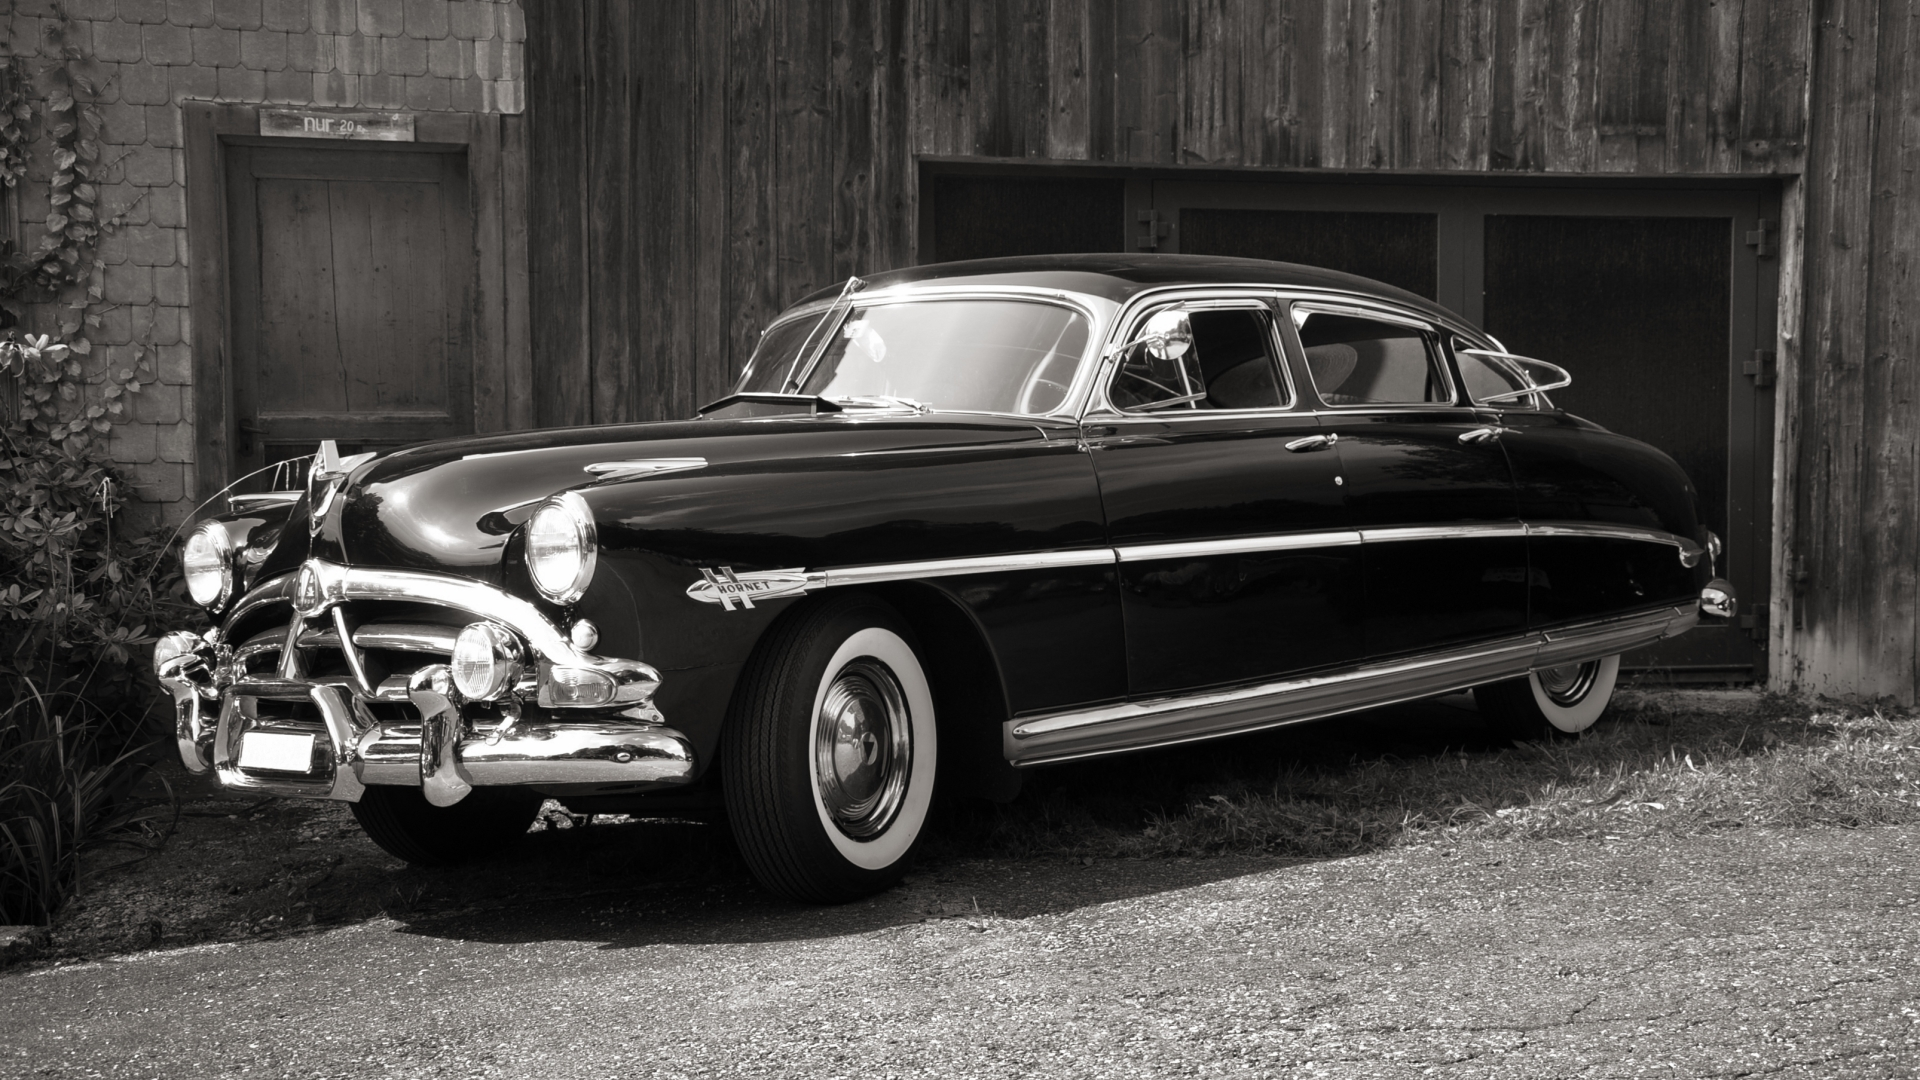 Alpha Coders Car Wallpapers 1 Hudson Hornet Hd Wallpapers Background Images